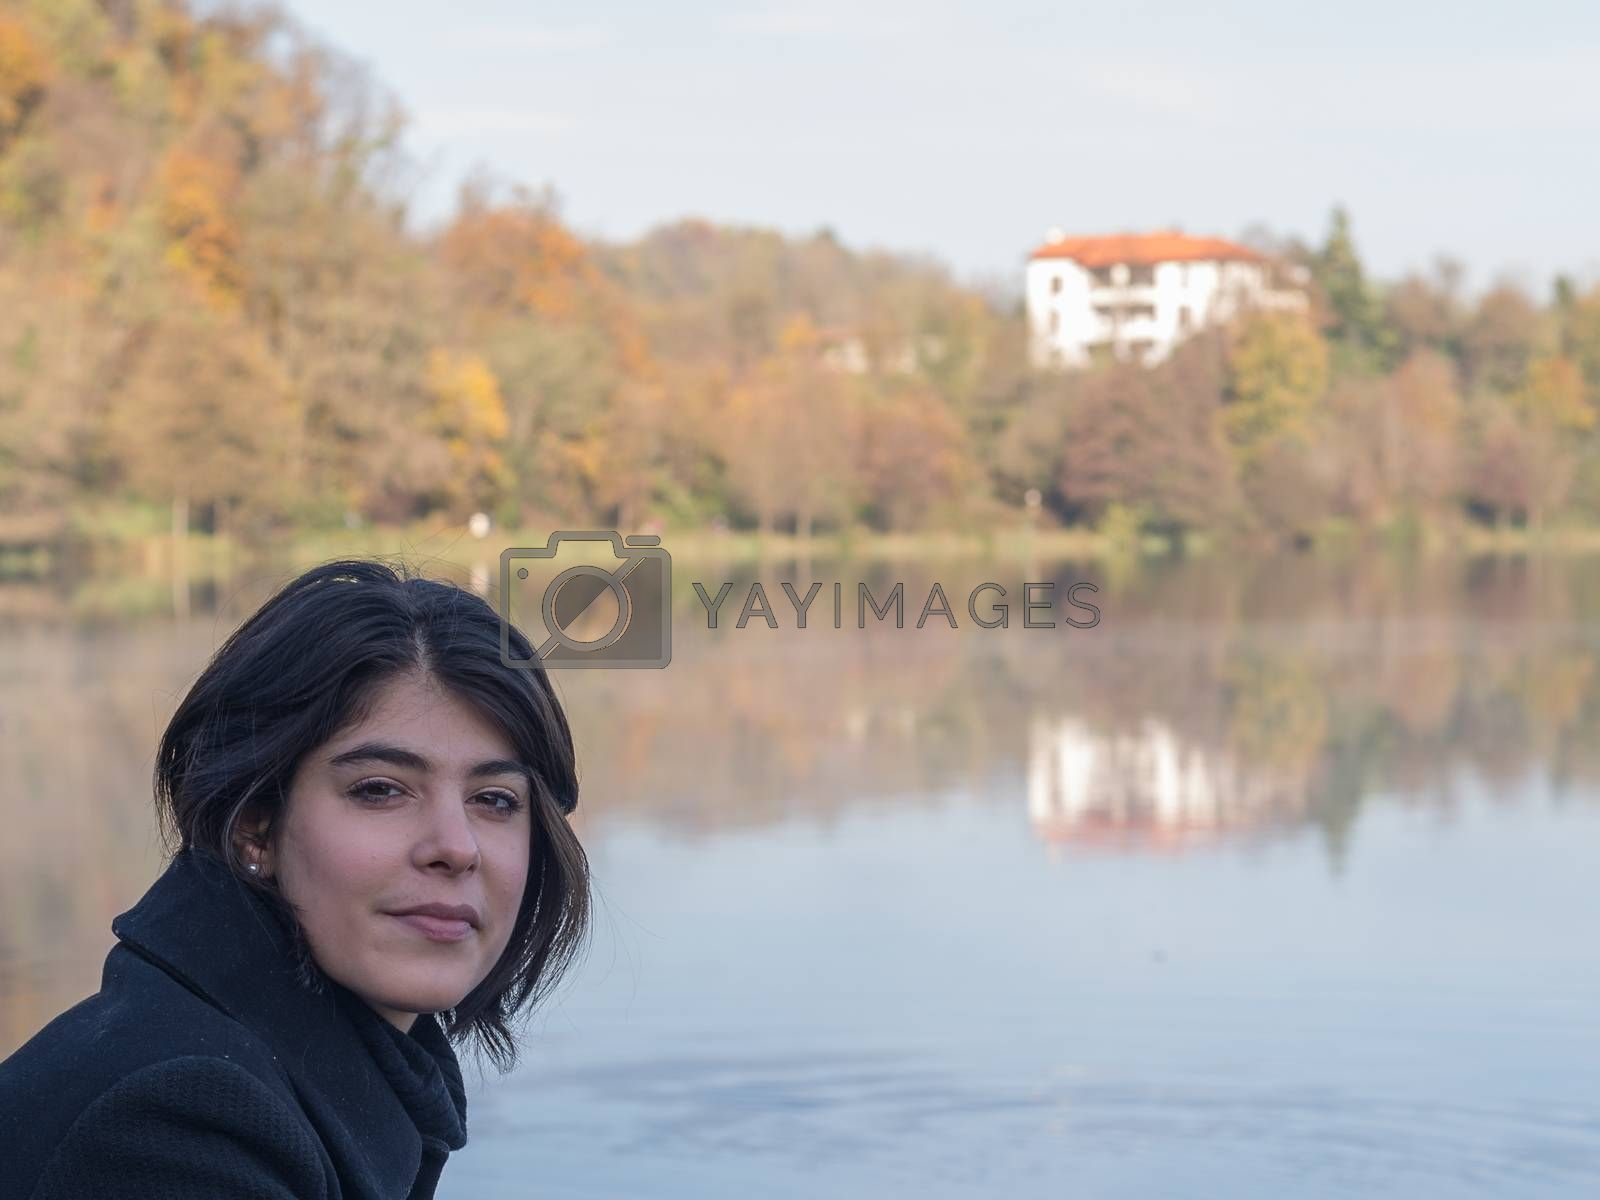 Royalty free image of girl with hair near the river bank by brambillasimone